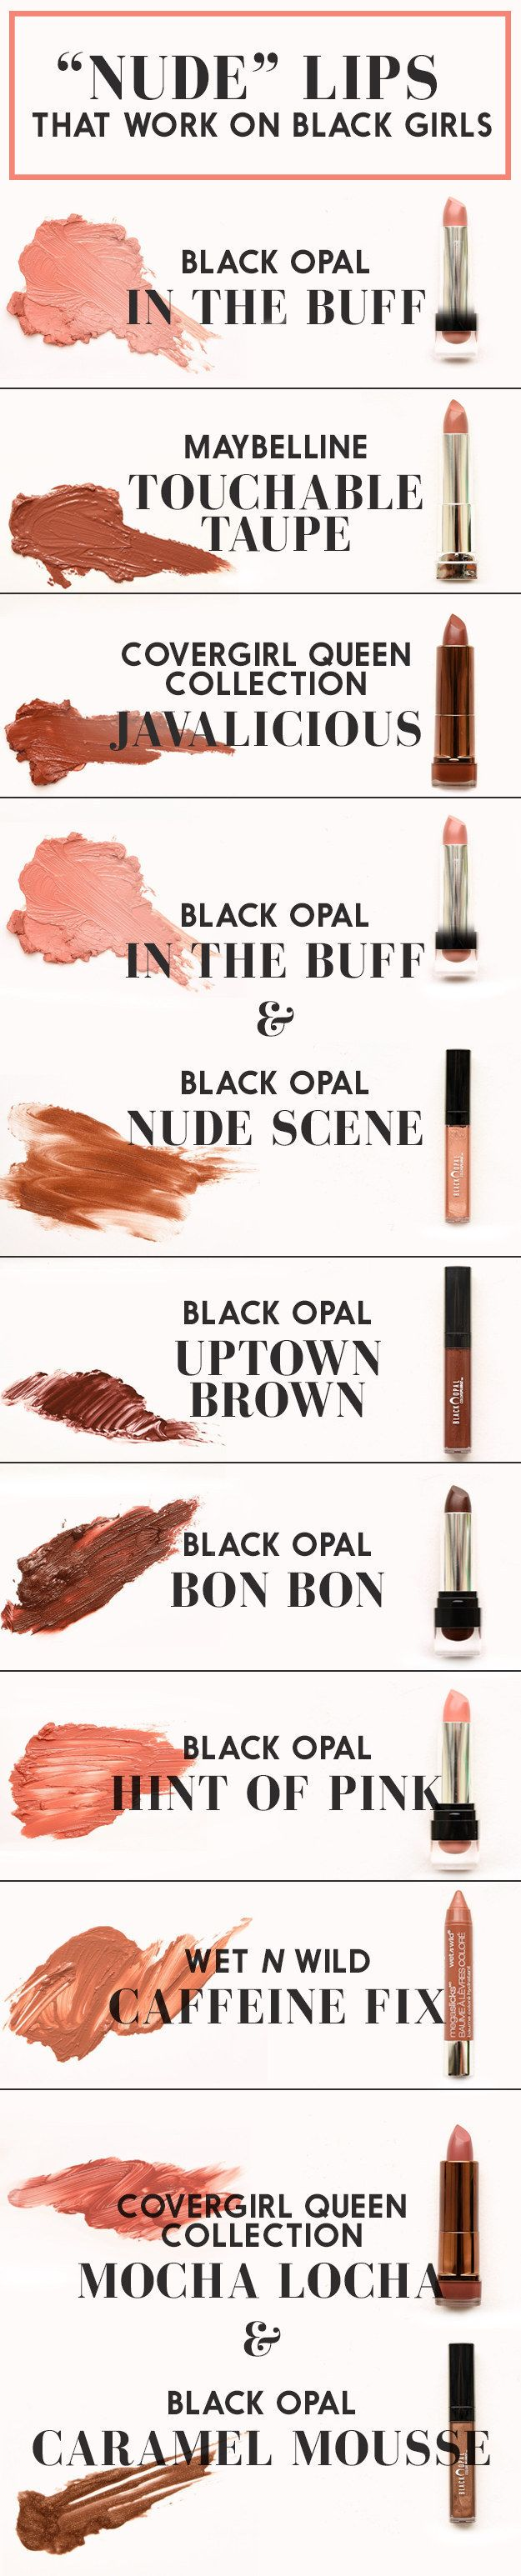 Nude Lipsticks                                                                                                                                                                                 More                                                                                                                                                                                 More